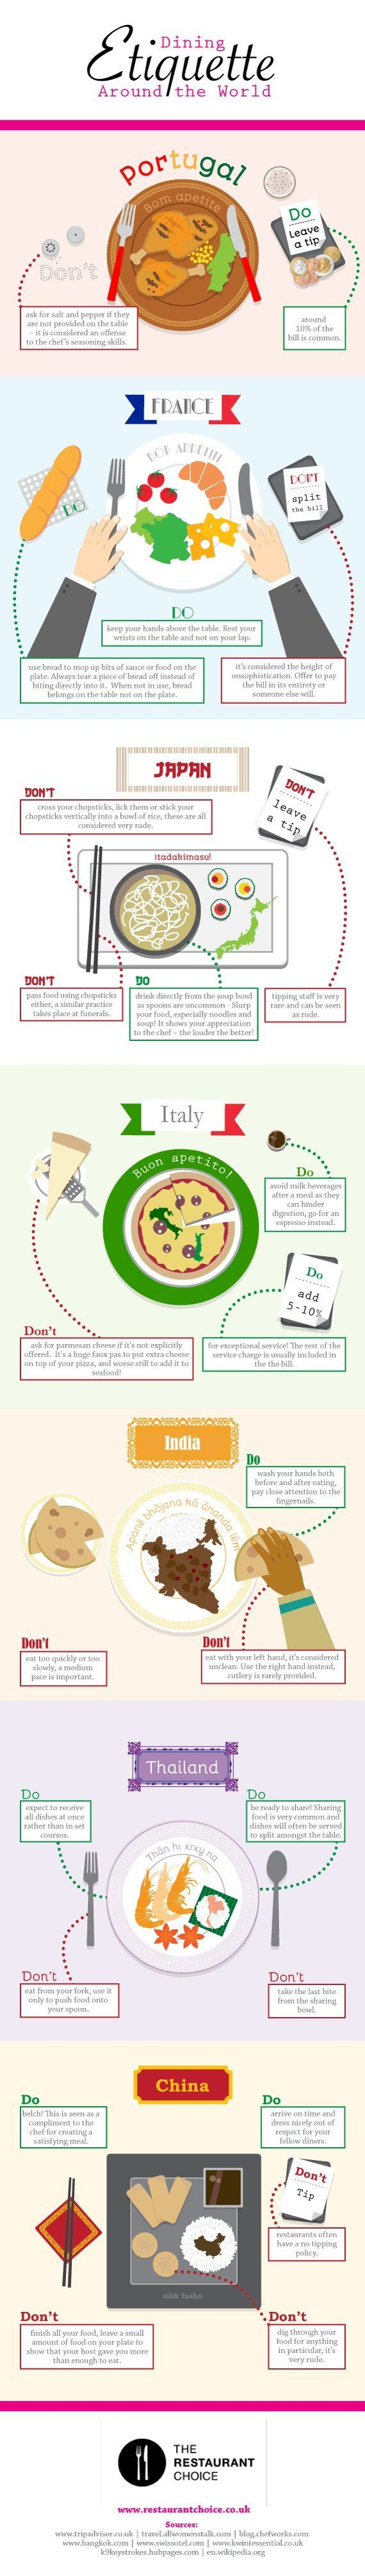 I don't know how accurate this is but I think it is definitely cool. Food is such a huge part of life and culture!